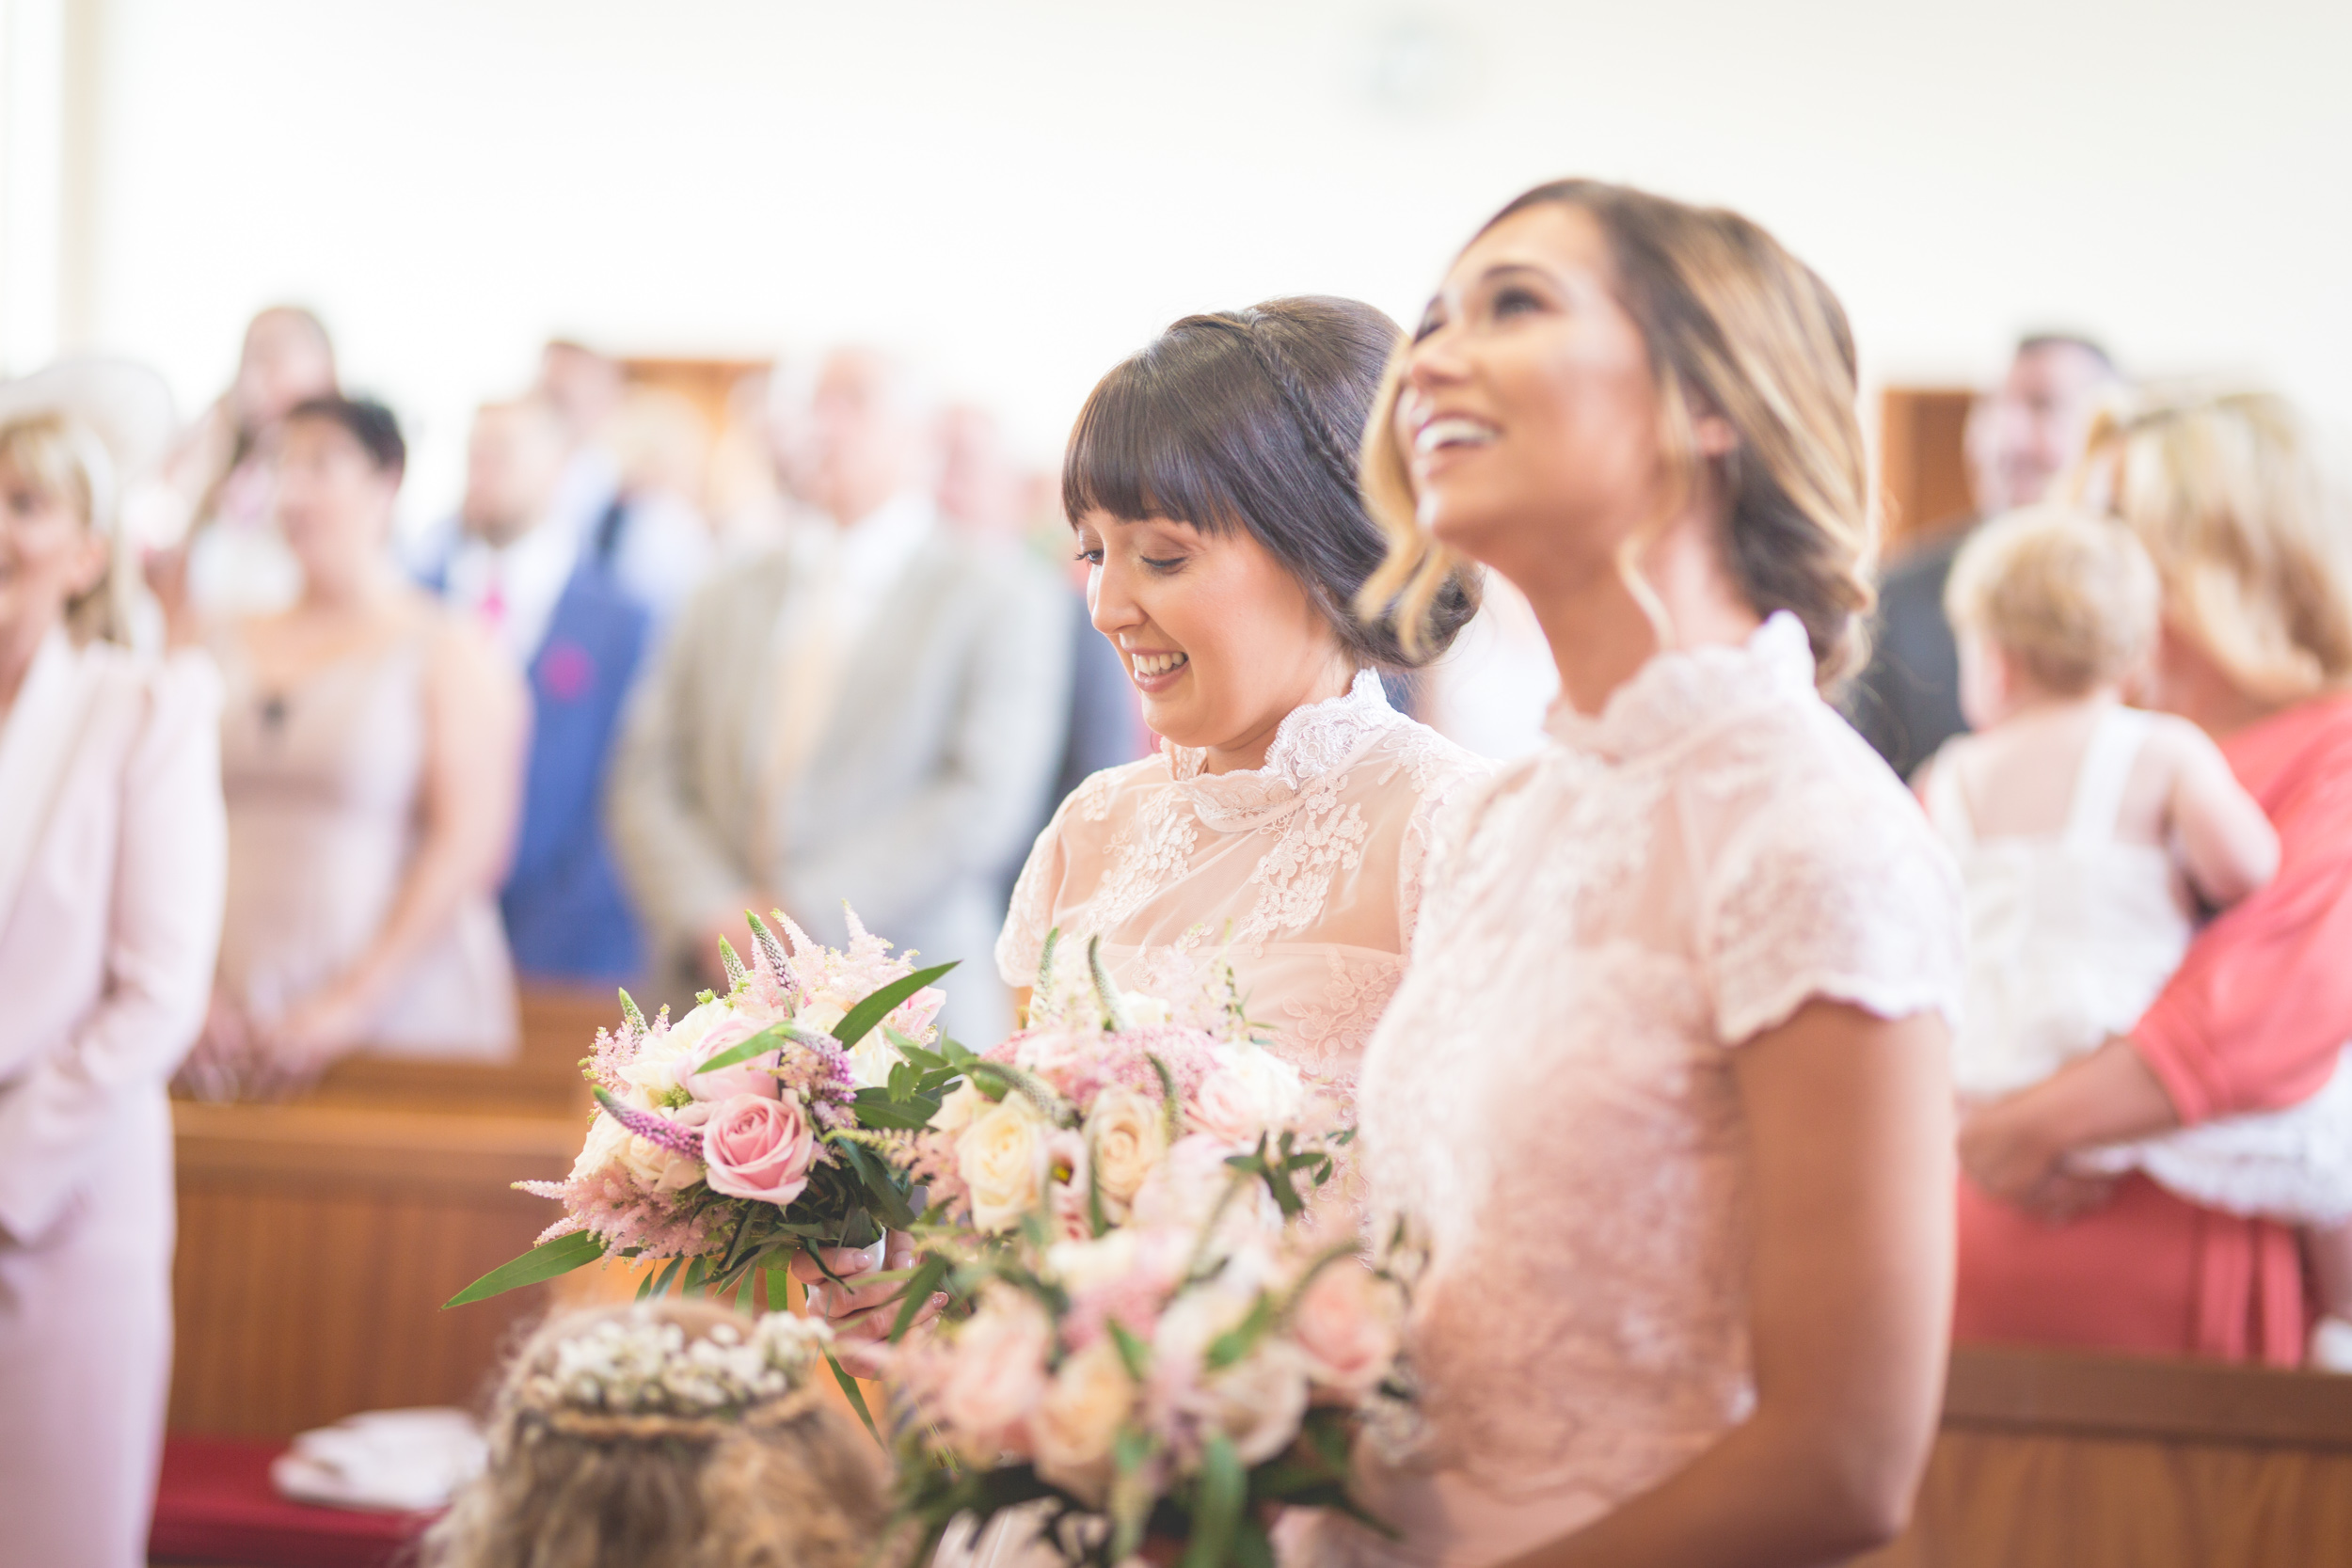 Brian McEwan | Northern Ireland Wedding Photographer | Rebecca & Michael | Ceremony-35.jpg